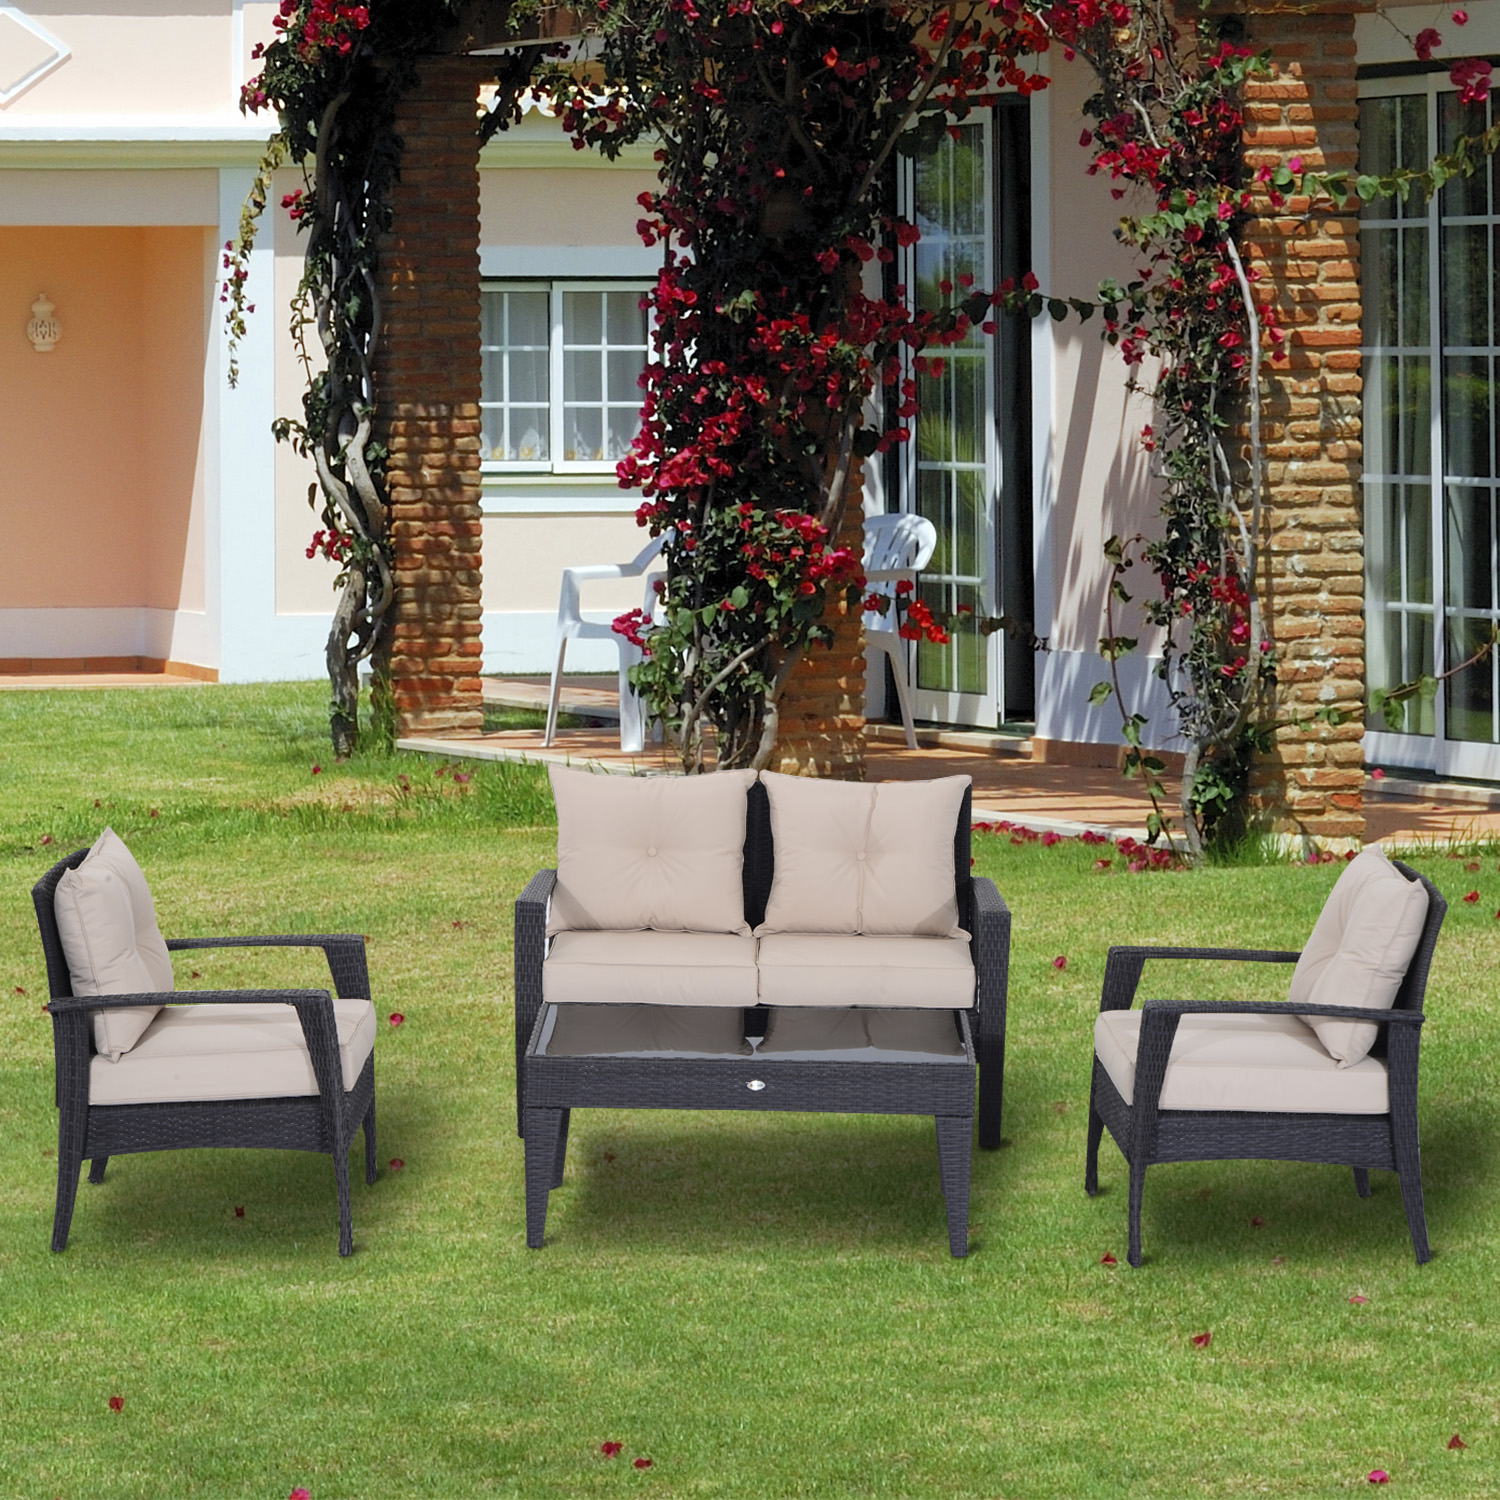 Outsunny 4pc Rattan Wicker Sofa Set Outdoor Coffee Table ... on Outdoor Loveseat Sets id=43290